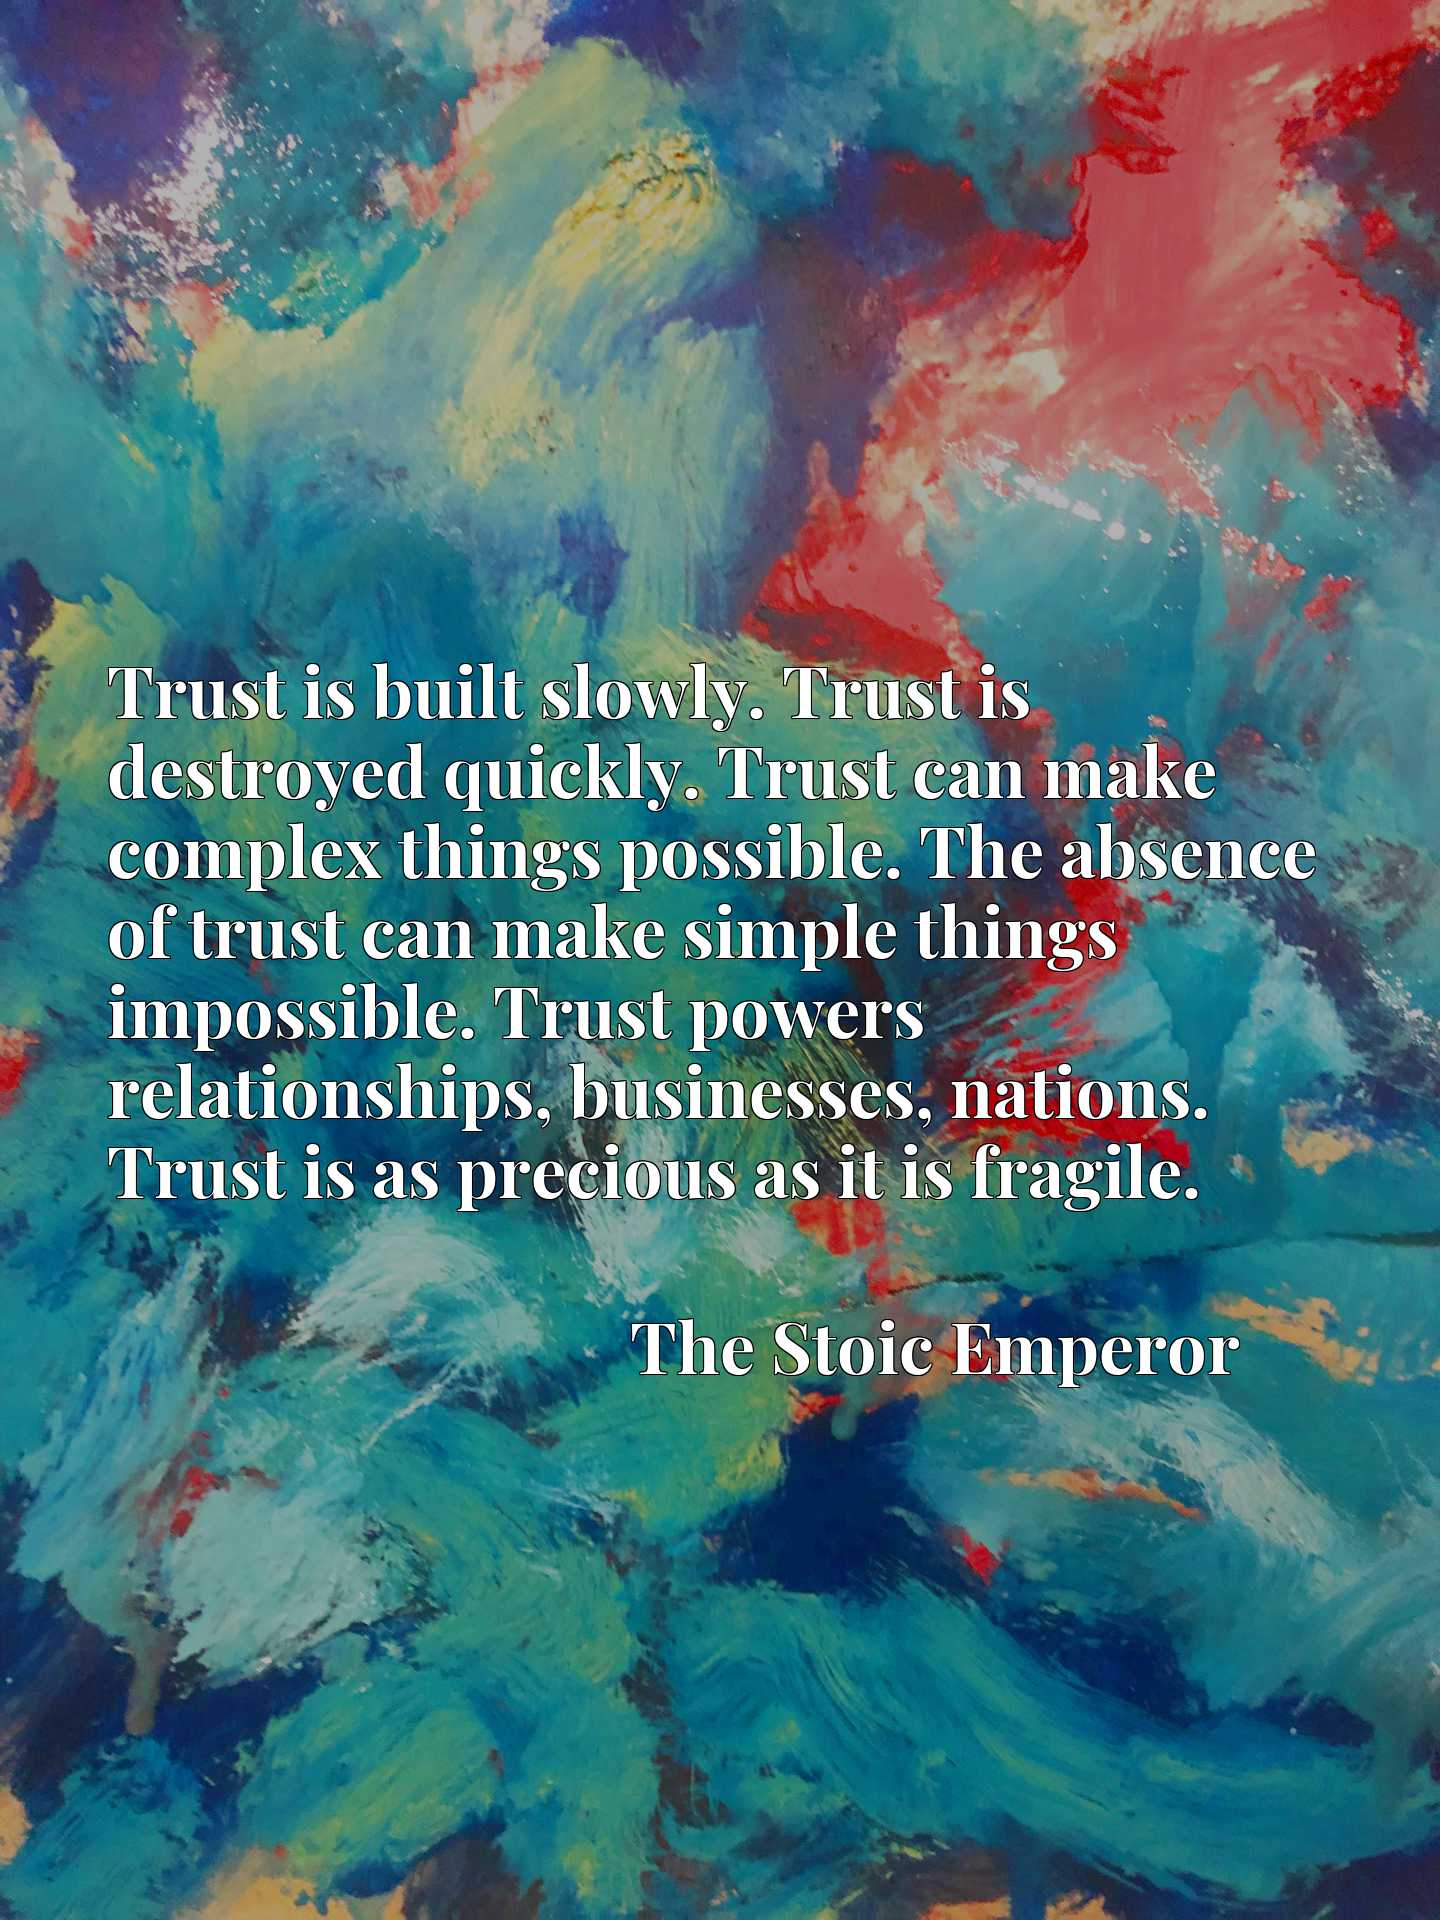 Trust is built slowly. Trust is destroyed quickly. Trust can make complex things possible. The absence of trust can make simple things impossible. Trust powers relationships, businesses, nations. Trust is as precious as it is fragile.